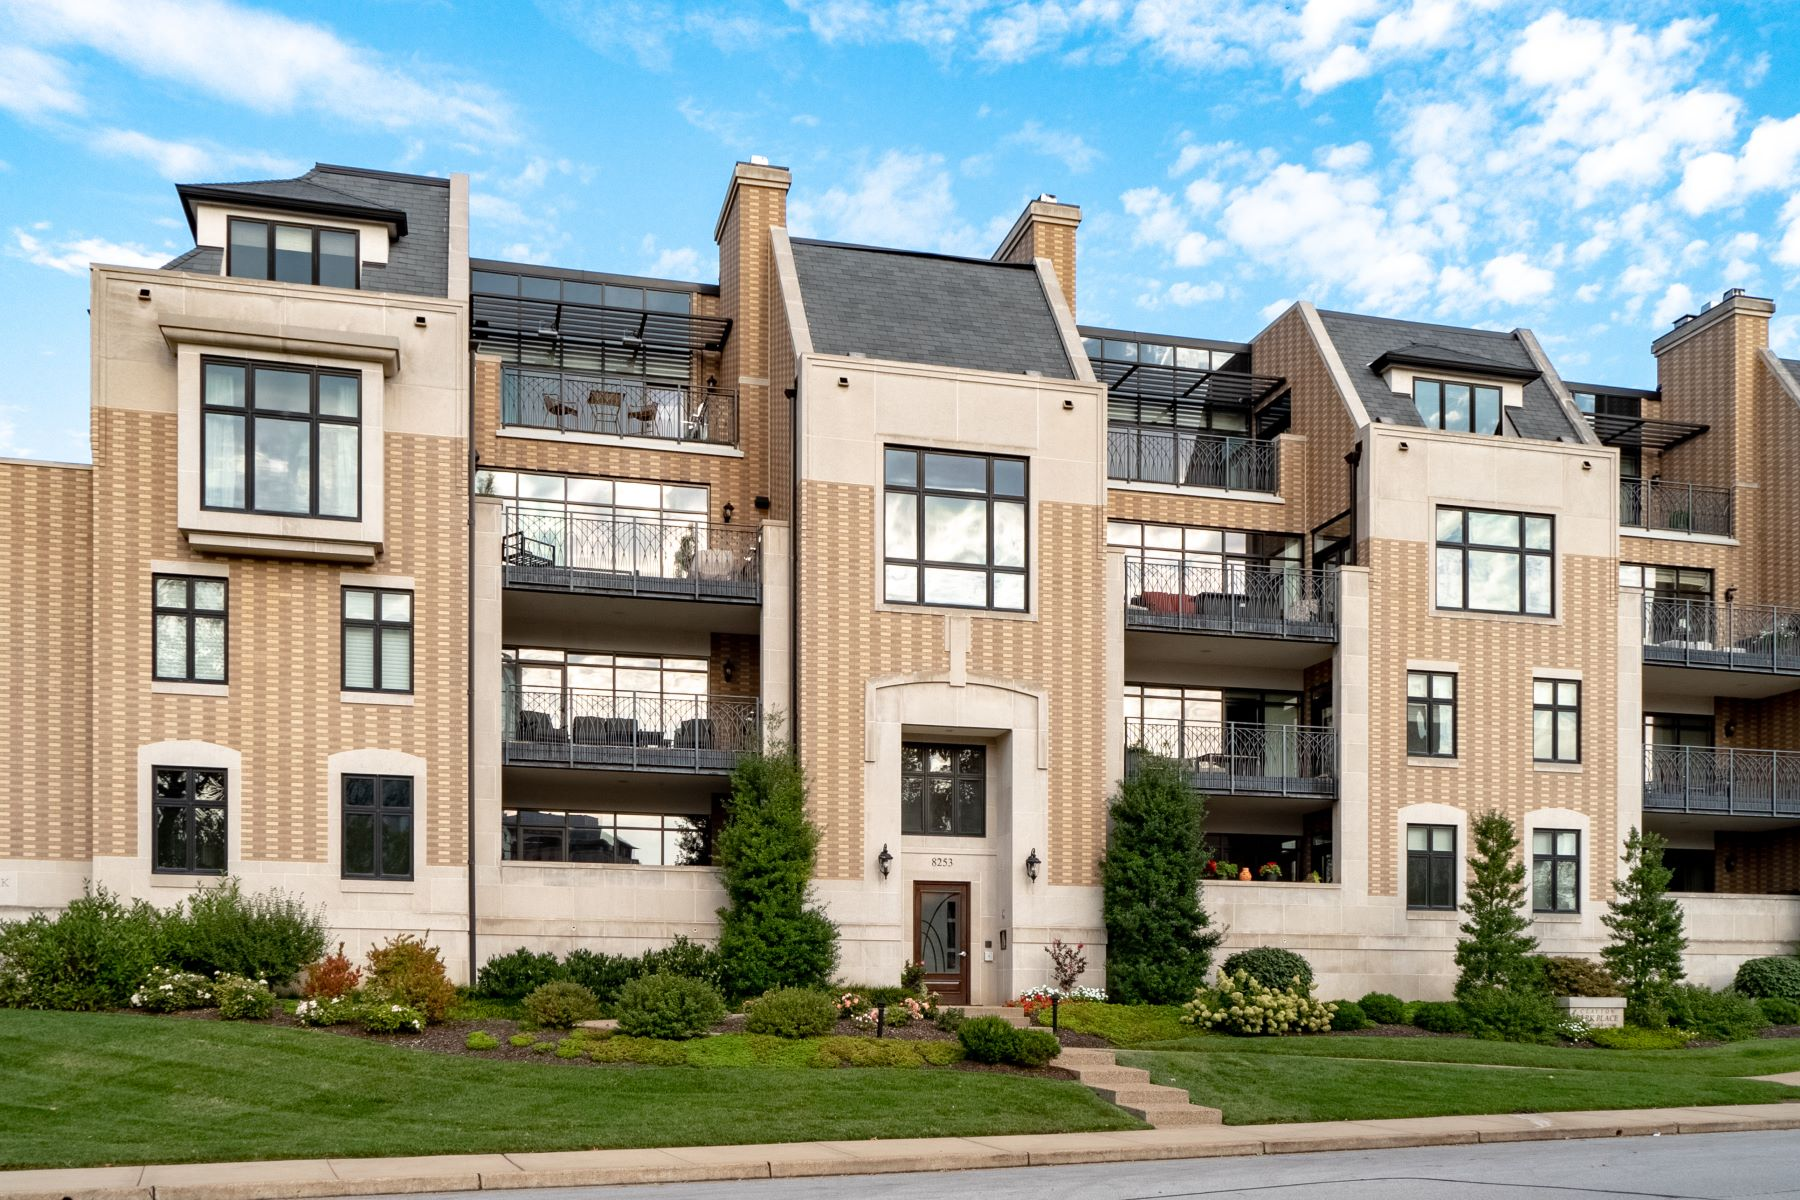 Property for Sale at Luxury Park Adjacent Condo 8253 Parkside Drive #1A St. Louis, Missouri 63105 United States